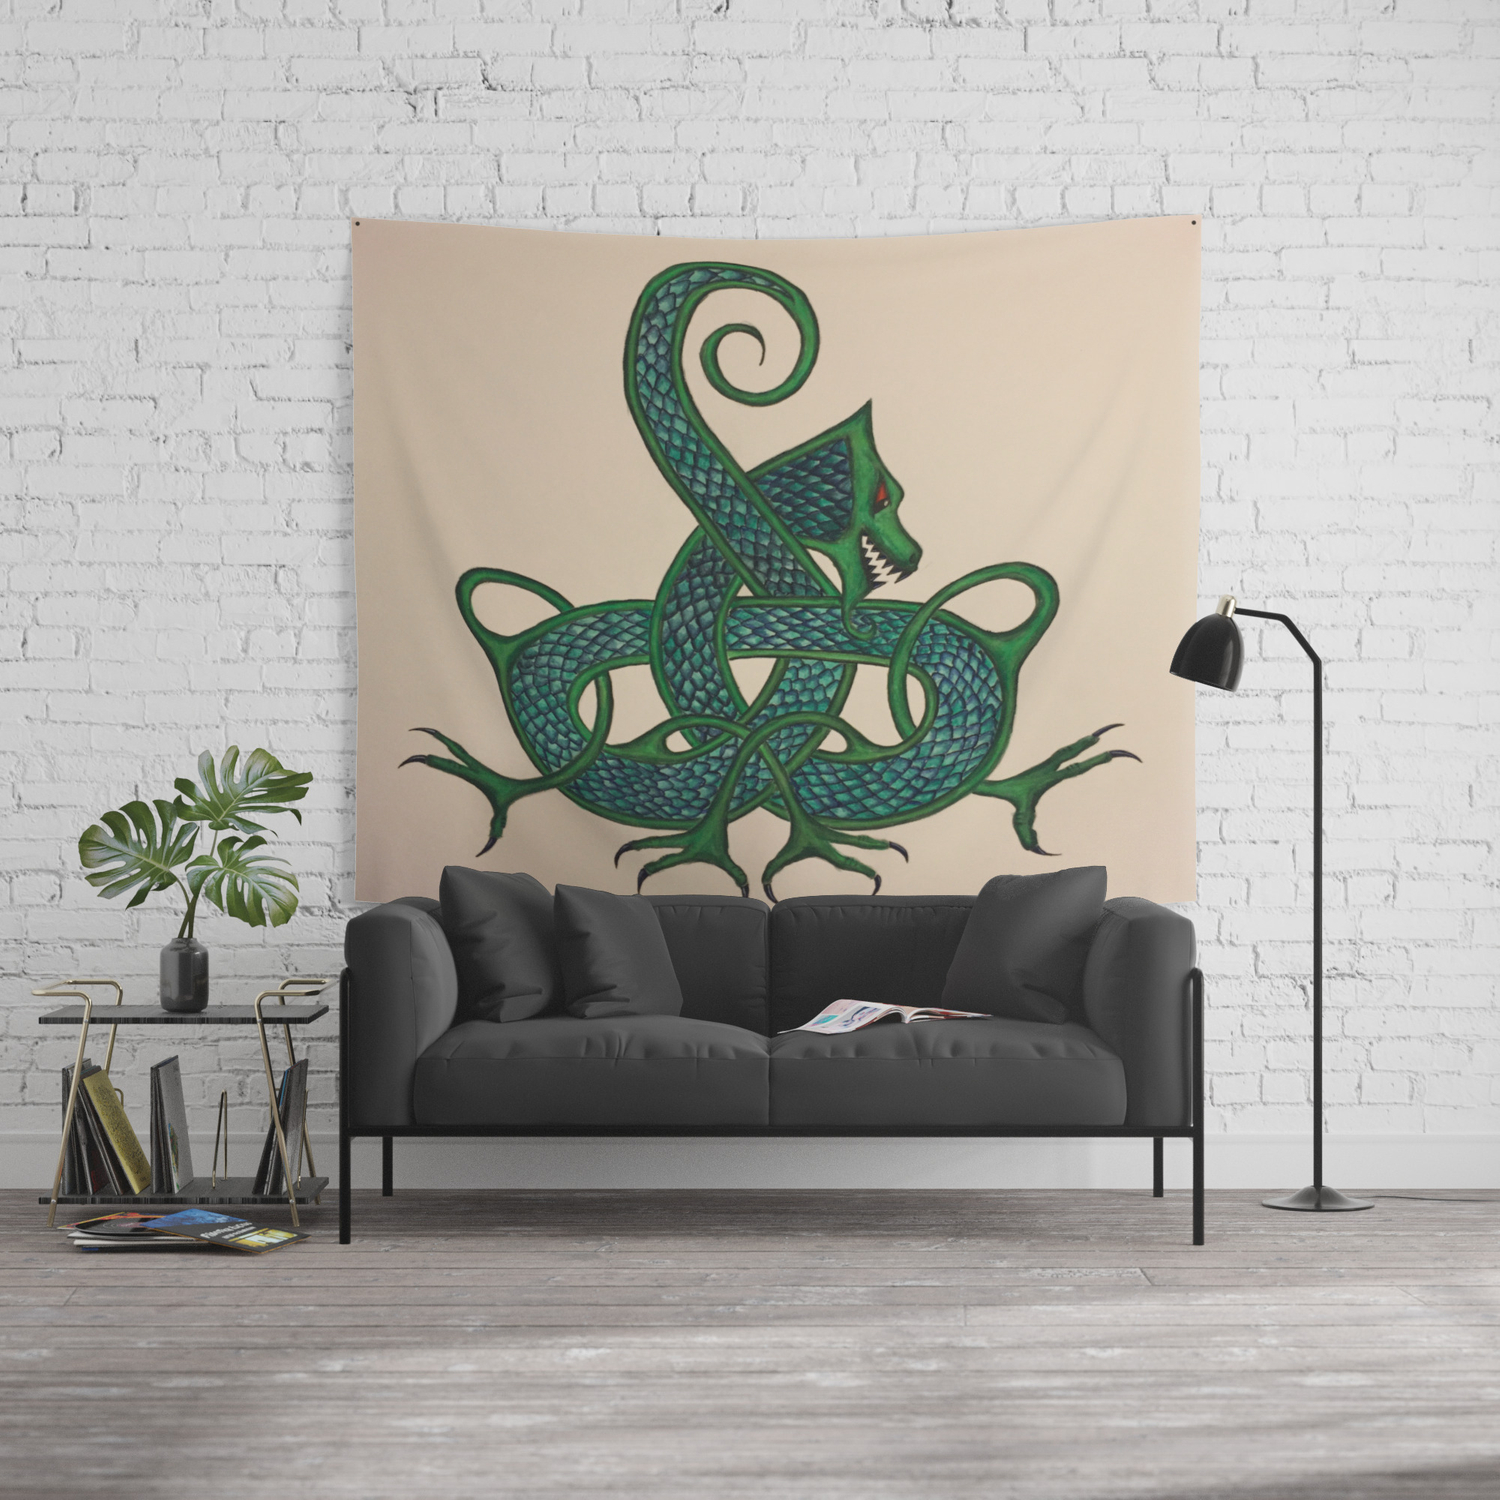 Astonishing Celtic Dragon Wall Tapestry Bralicious Painted Fabric Chair Ideas Braliciousco